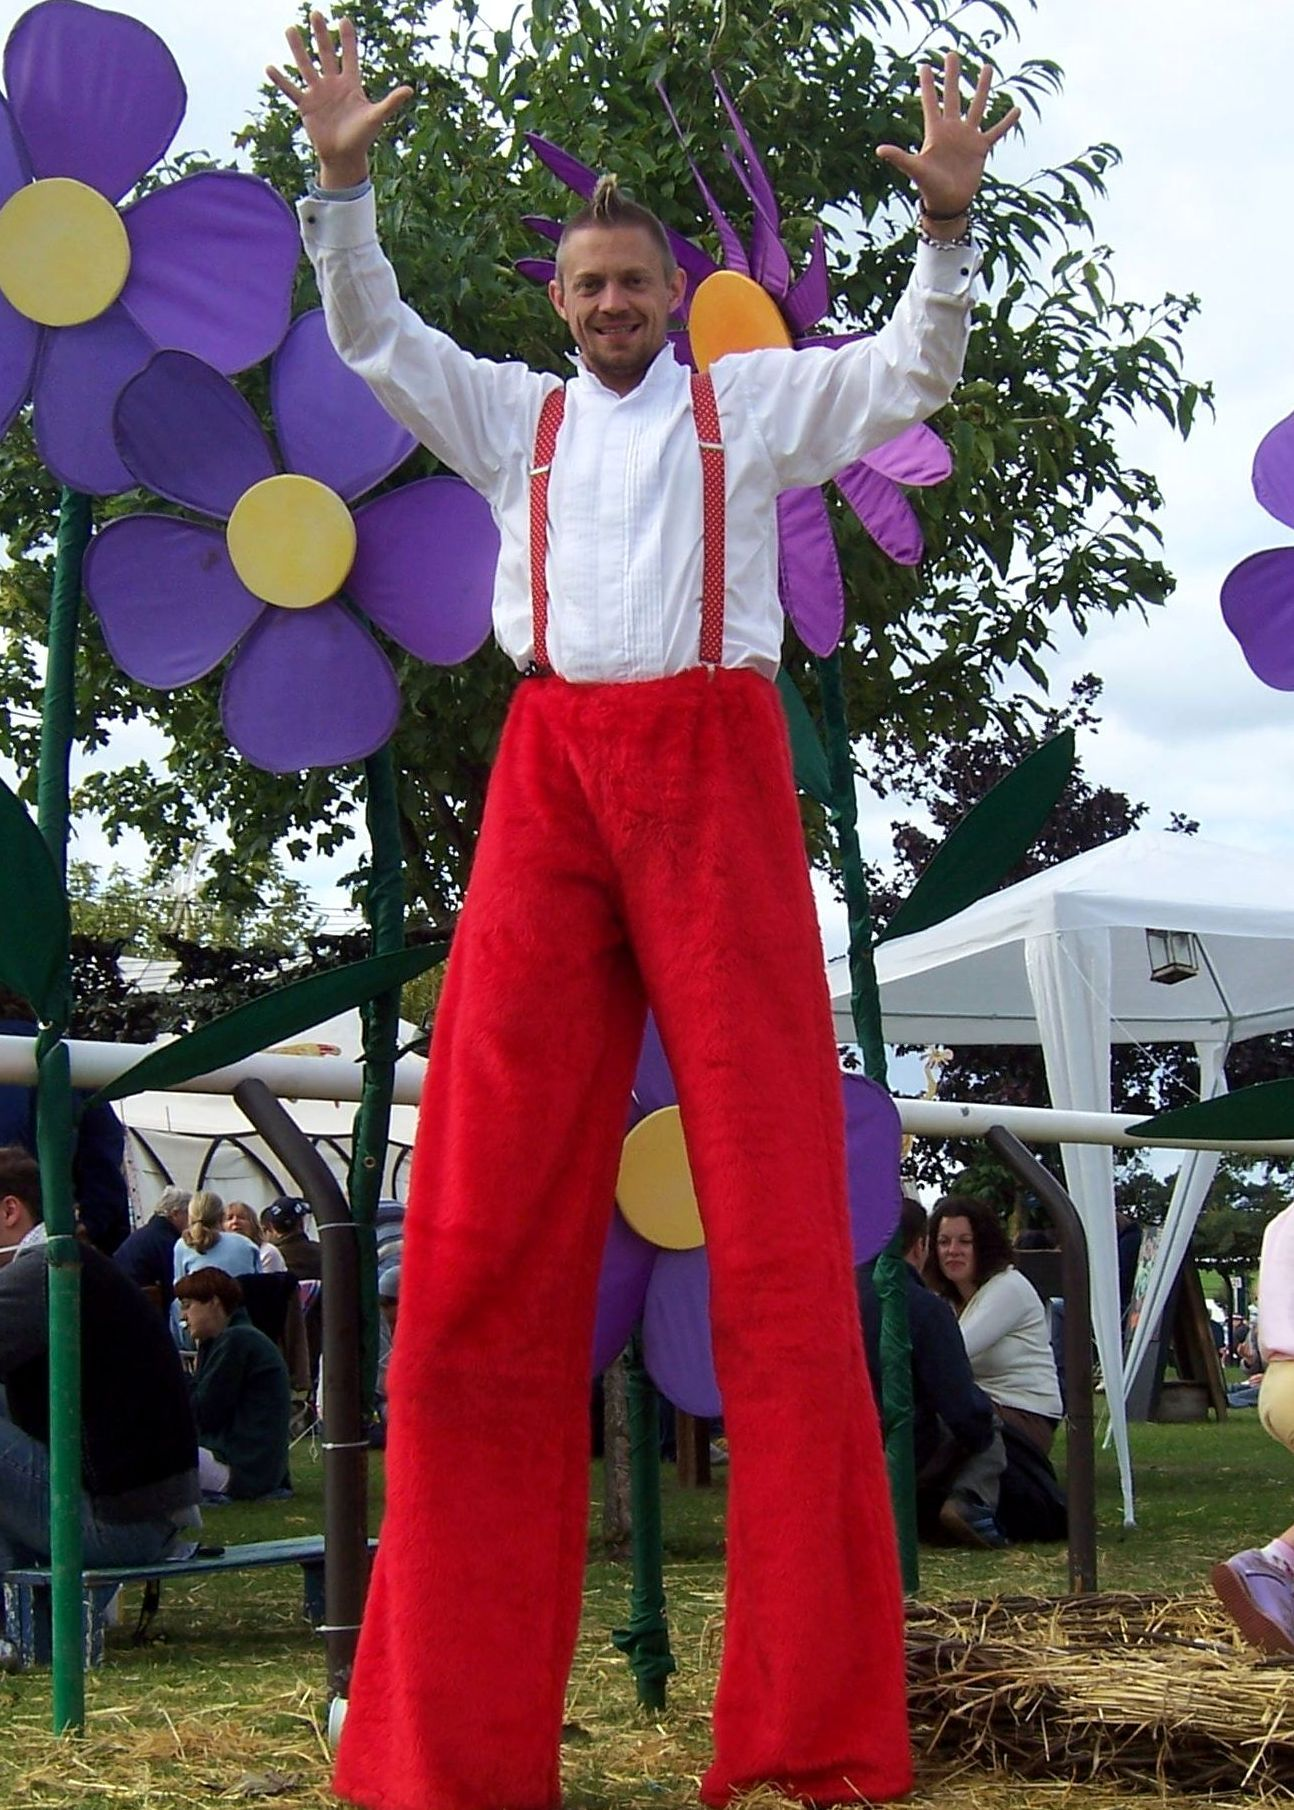 Thomas Trilby Stilt Walker from Gloucestershire